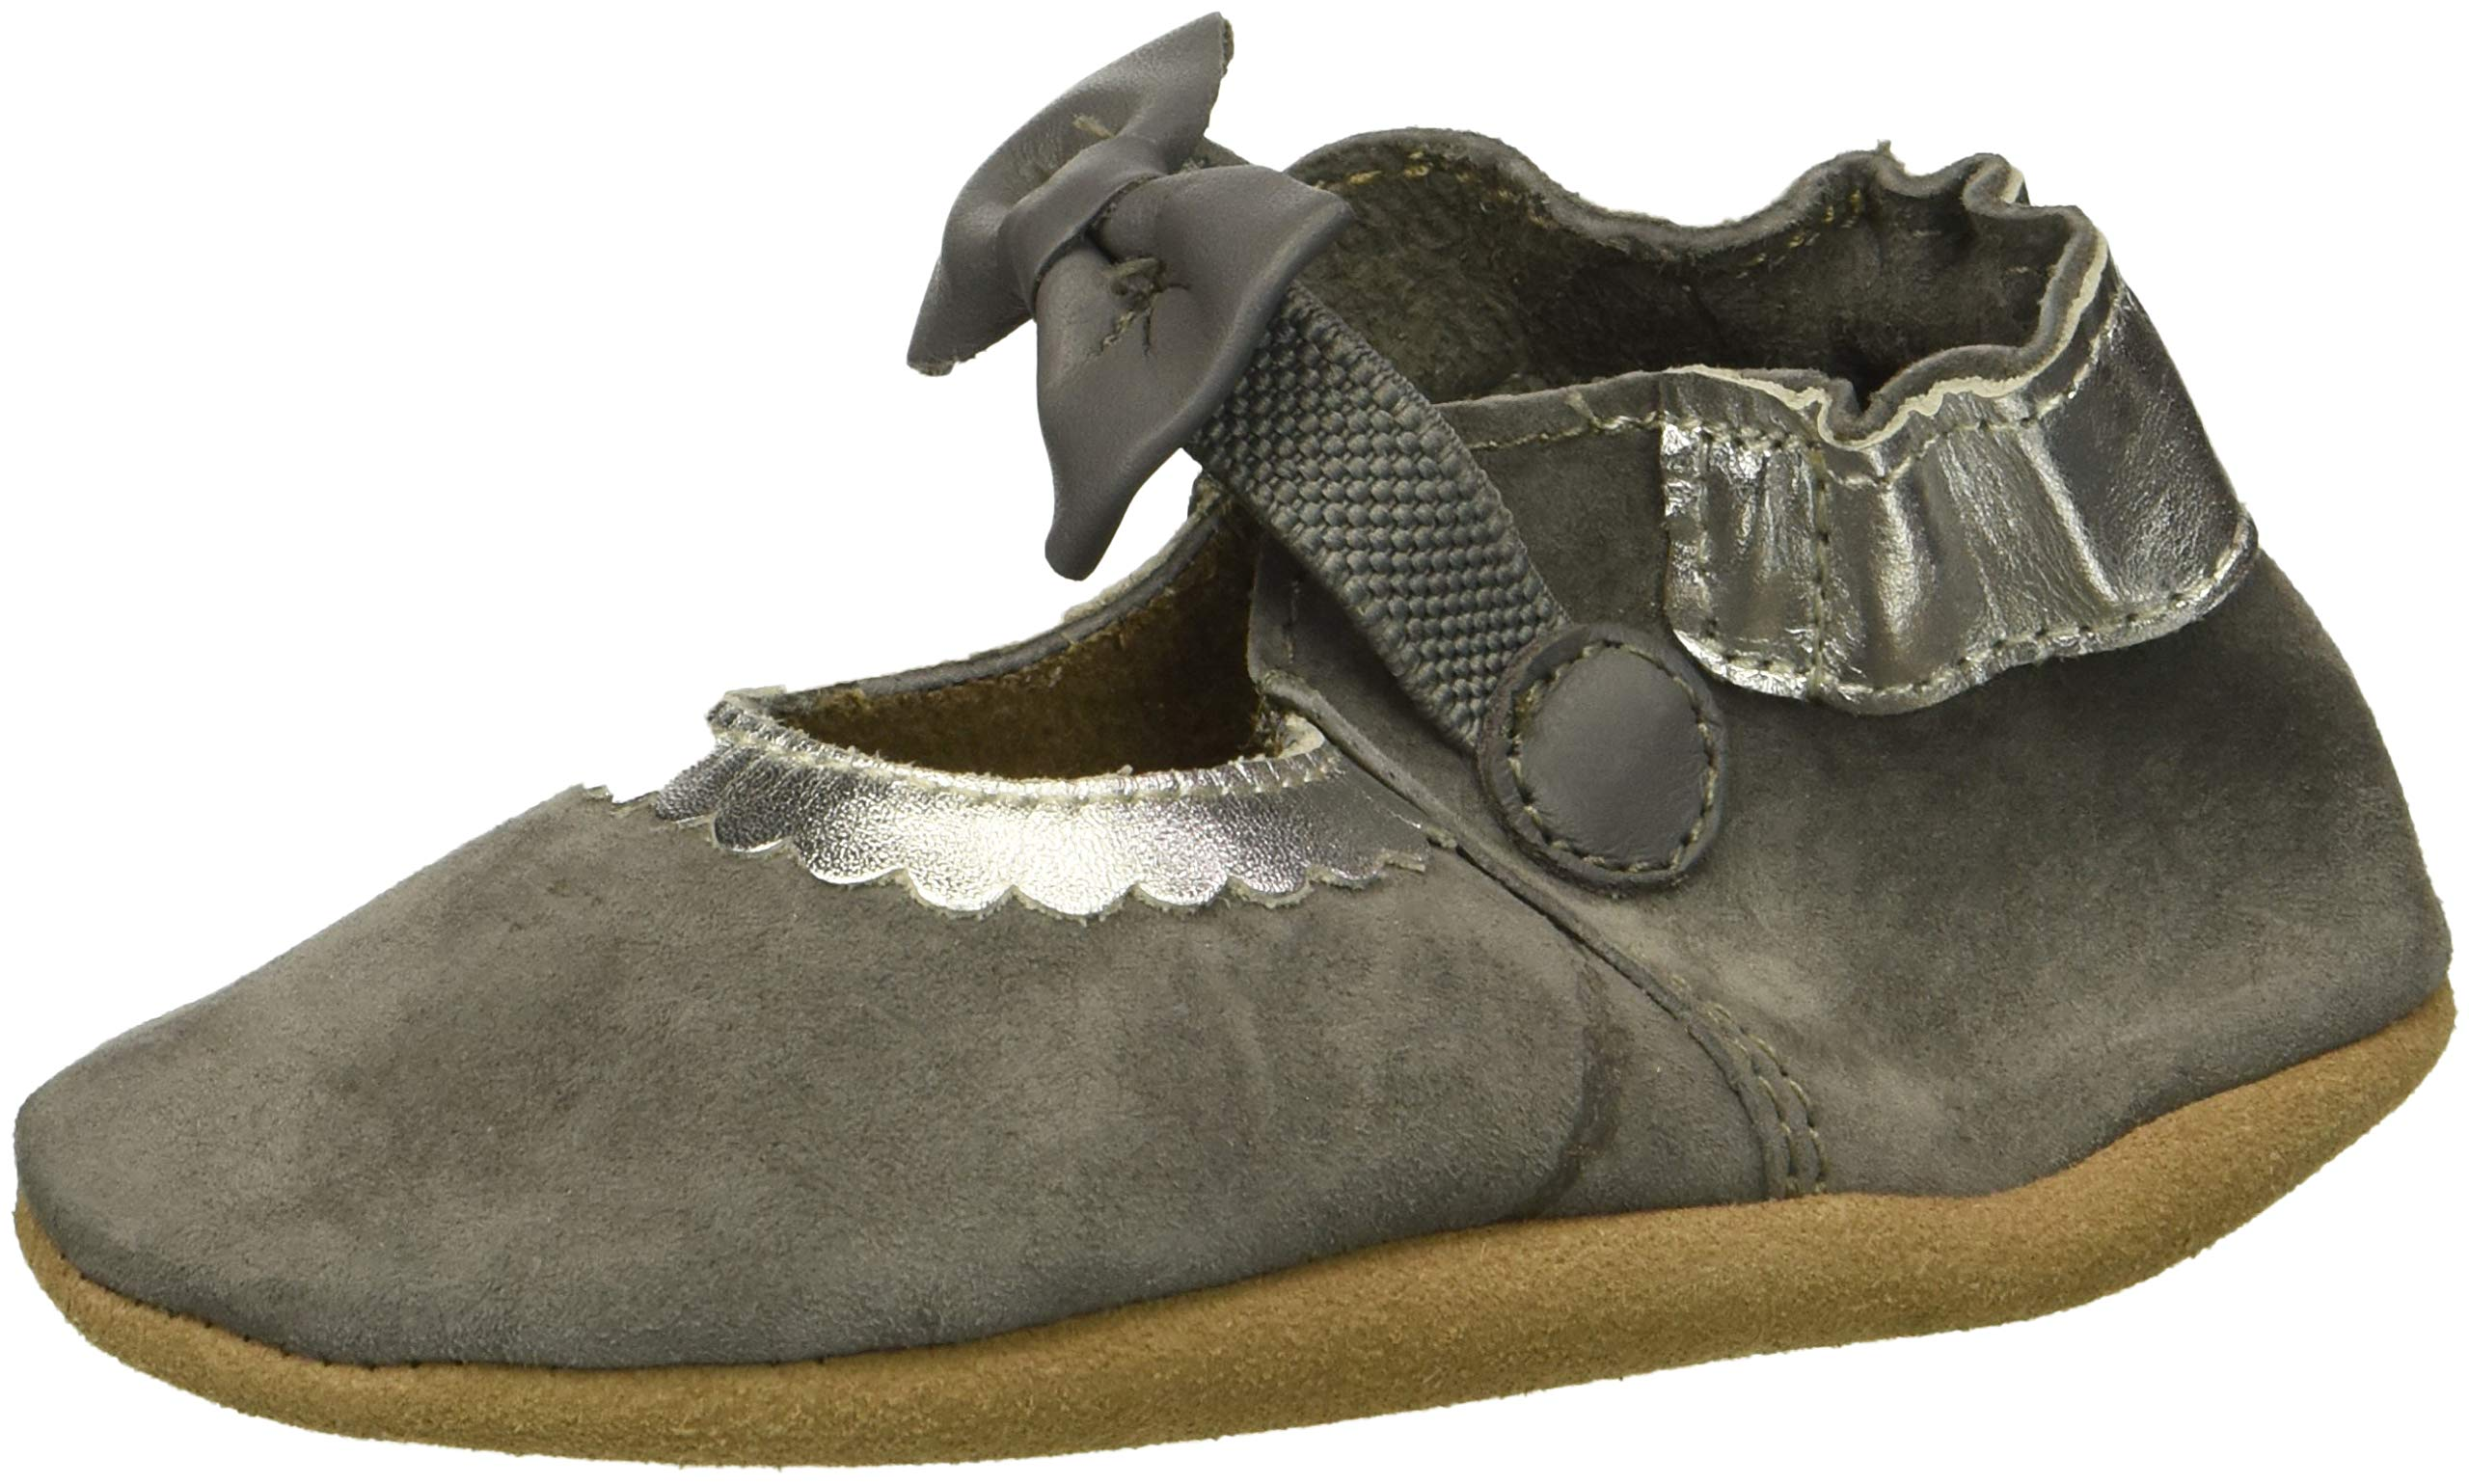 Robeez Girls' Mary Jane Soft Soles Crib Shoe, Keeping It Classy Grey, 6-12 Months M US Infant